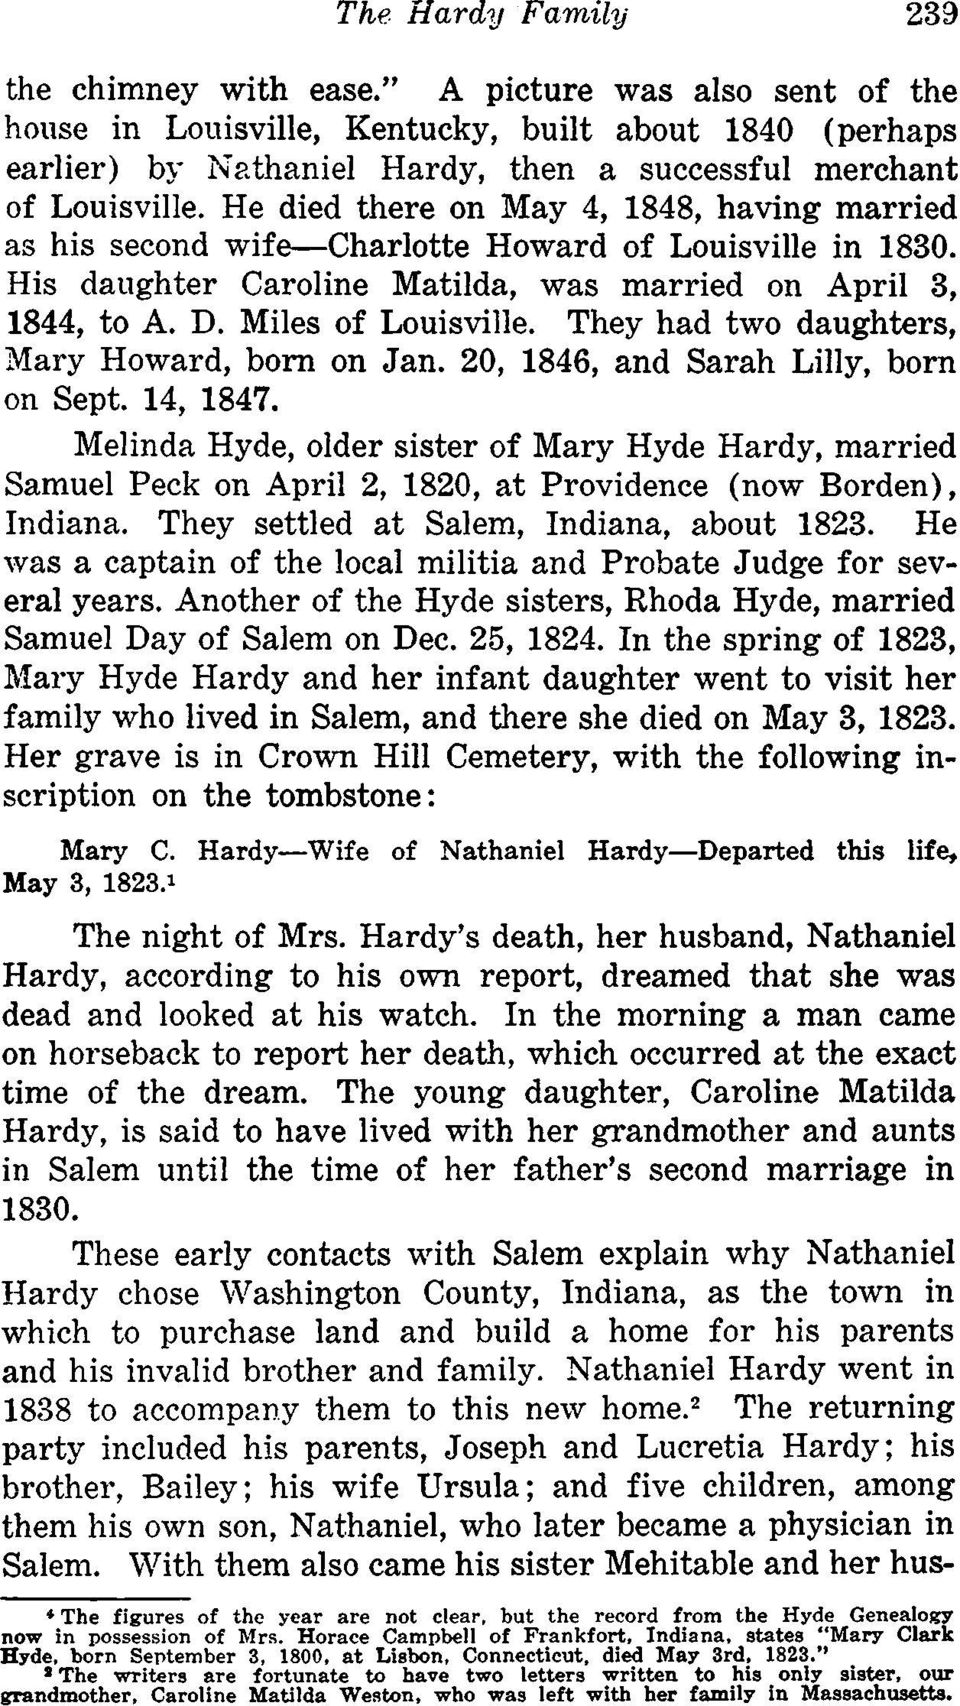 He died there on May 4, 1848, having married as his second wife-charlotte Howard of Louisville in 1830. His daughter Caroline Matilda, was married on April 3, 1844, to A. D. Miles of Louisville.